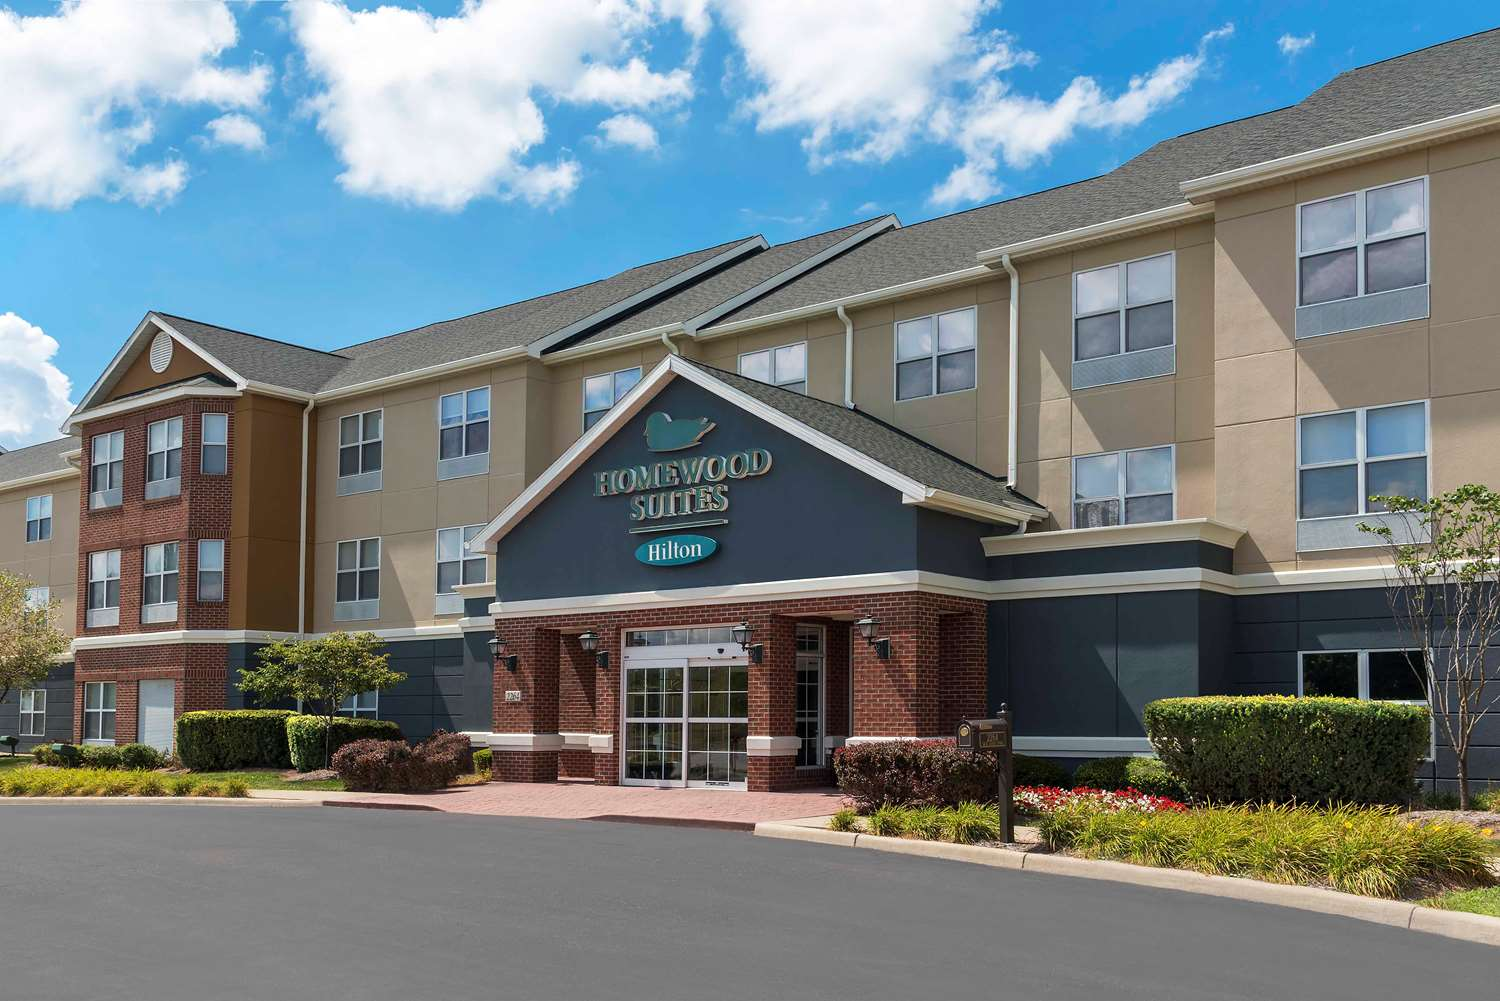 Homewood Suites Indianapolis Airport Plainfield